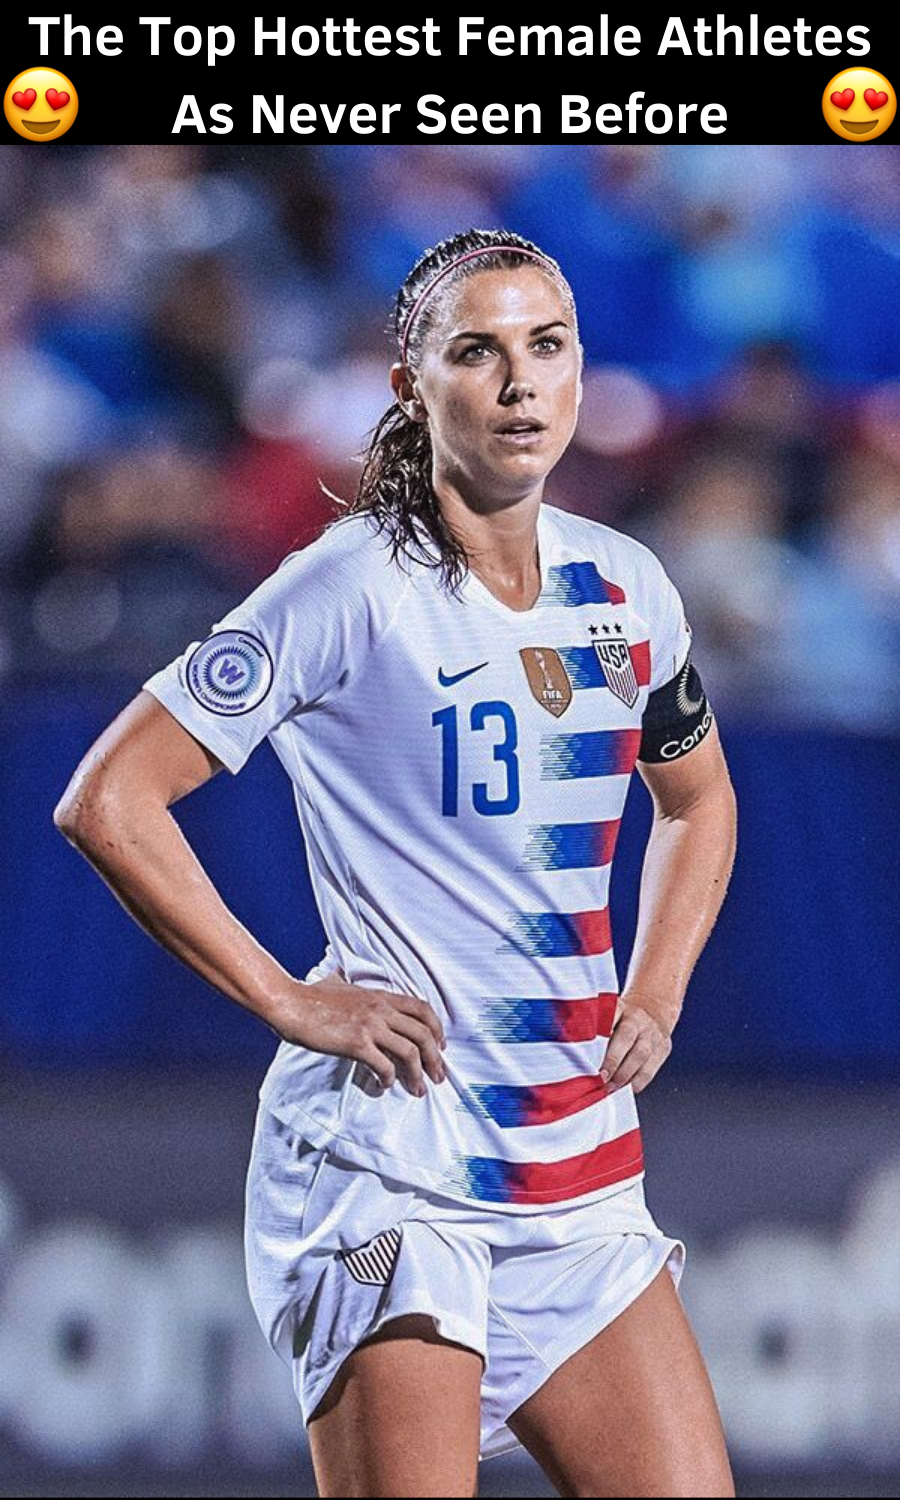 Olympic Gold Medallist And American Soccer Participant Alex Morgan 28 Has Been Ranked By Many Lists As The In 2020 Usa Soccer Women Female Athletes Women S Soccer Team